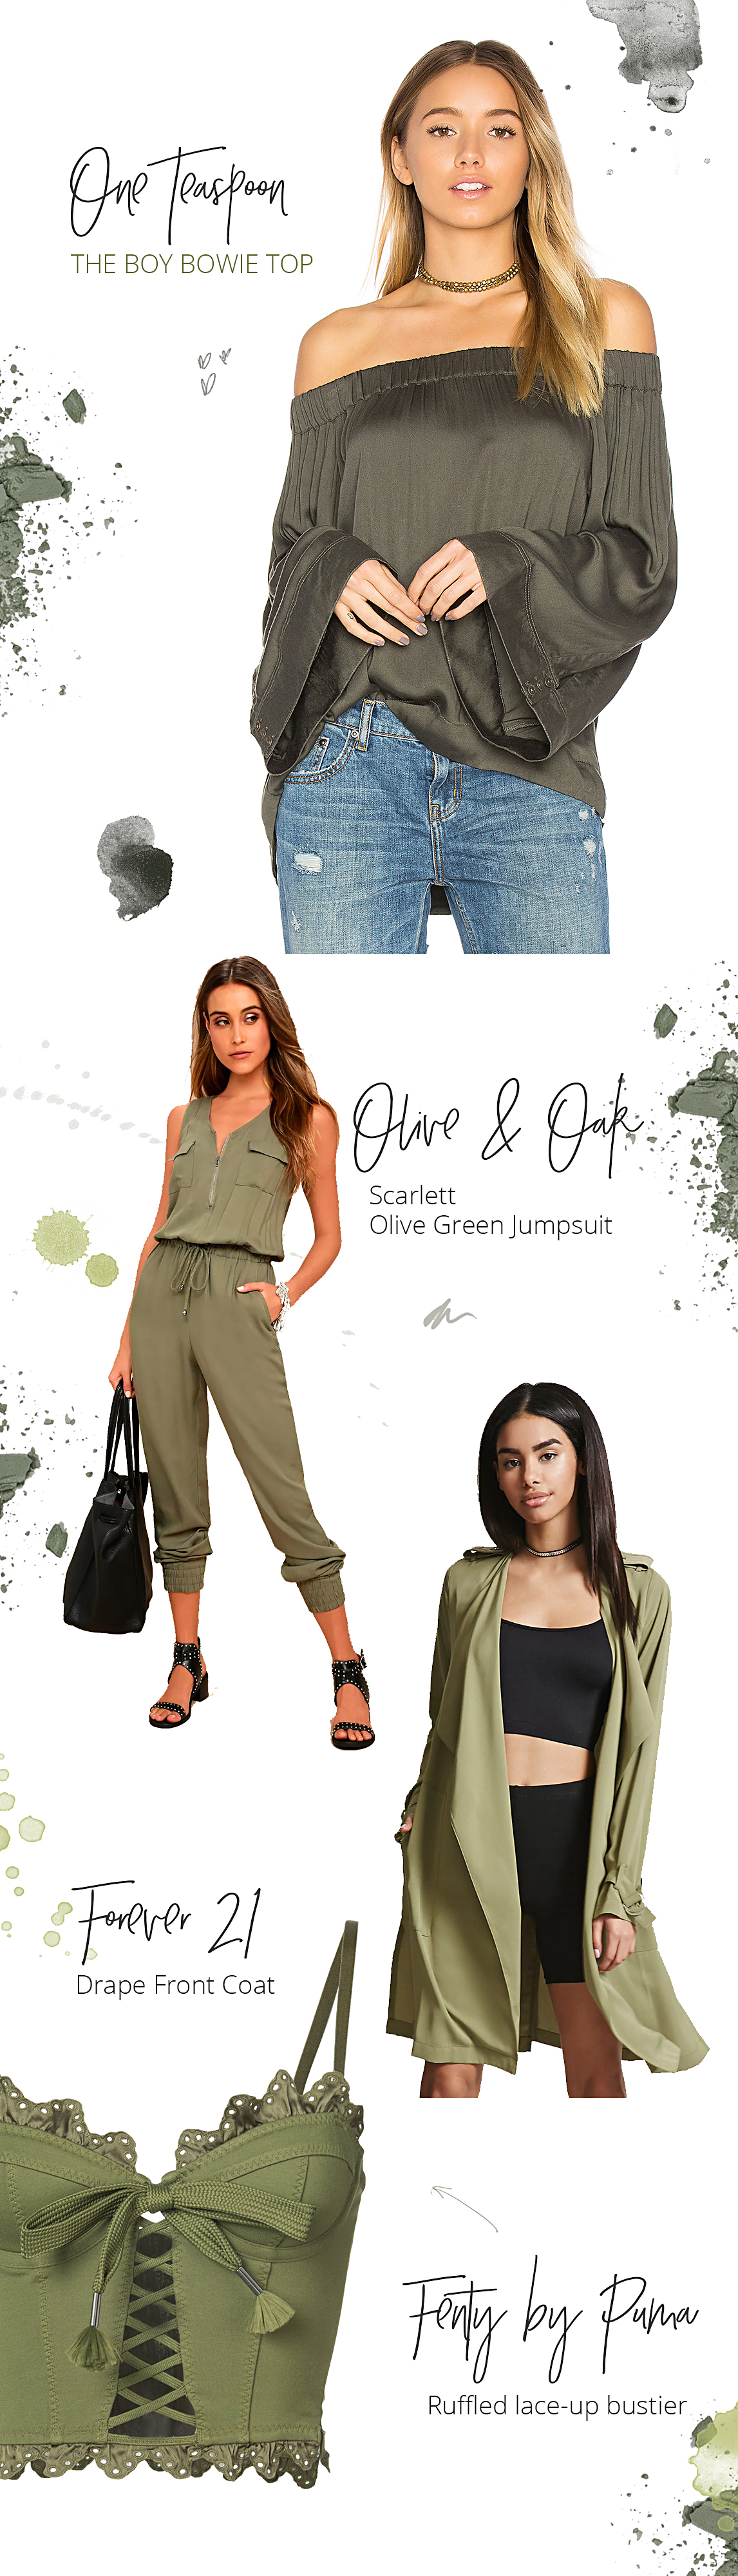 Olive fall edit clothing Style Unsettled